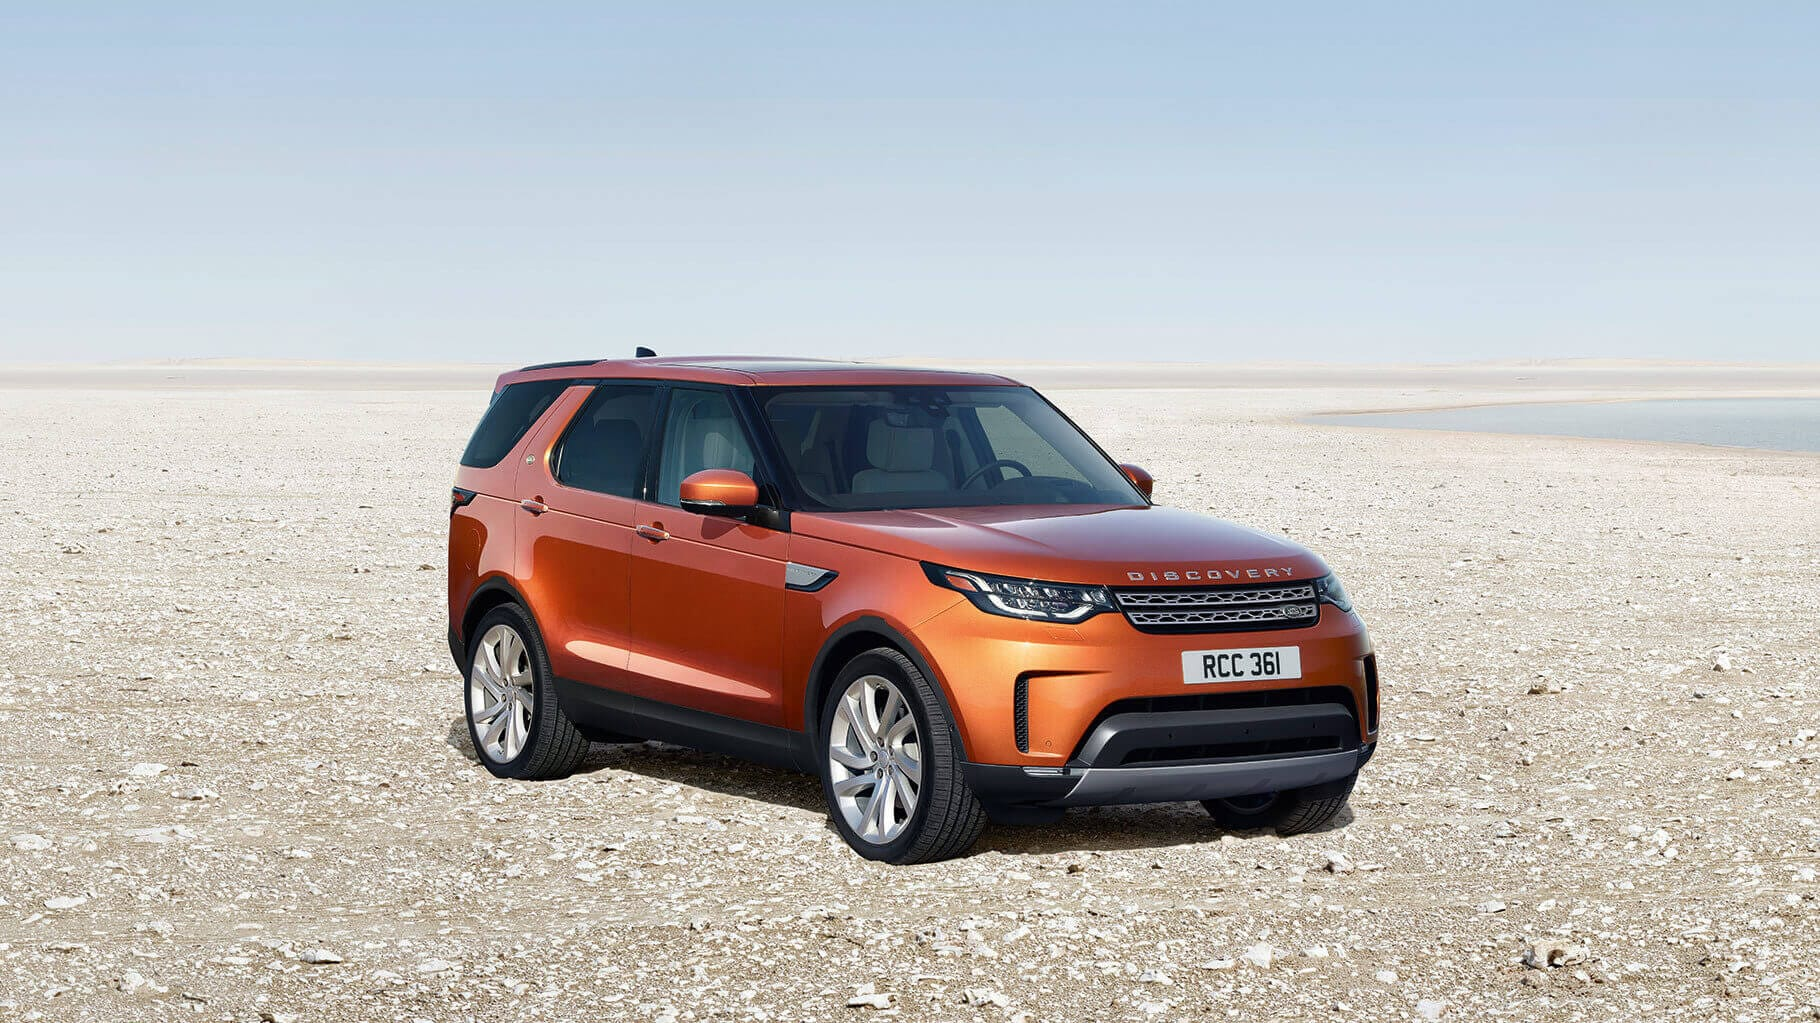 land rover suv lineup pricing specs pics land rover fort myers. Black Bedroom Furniture Sets. Home Design Ideas